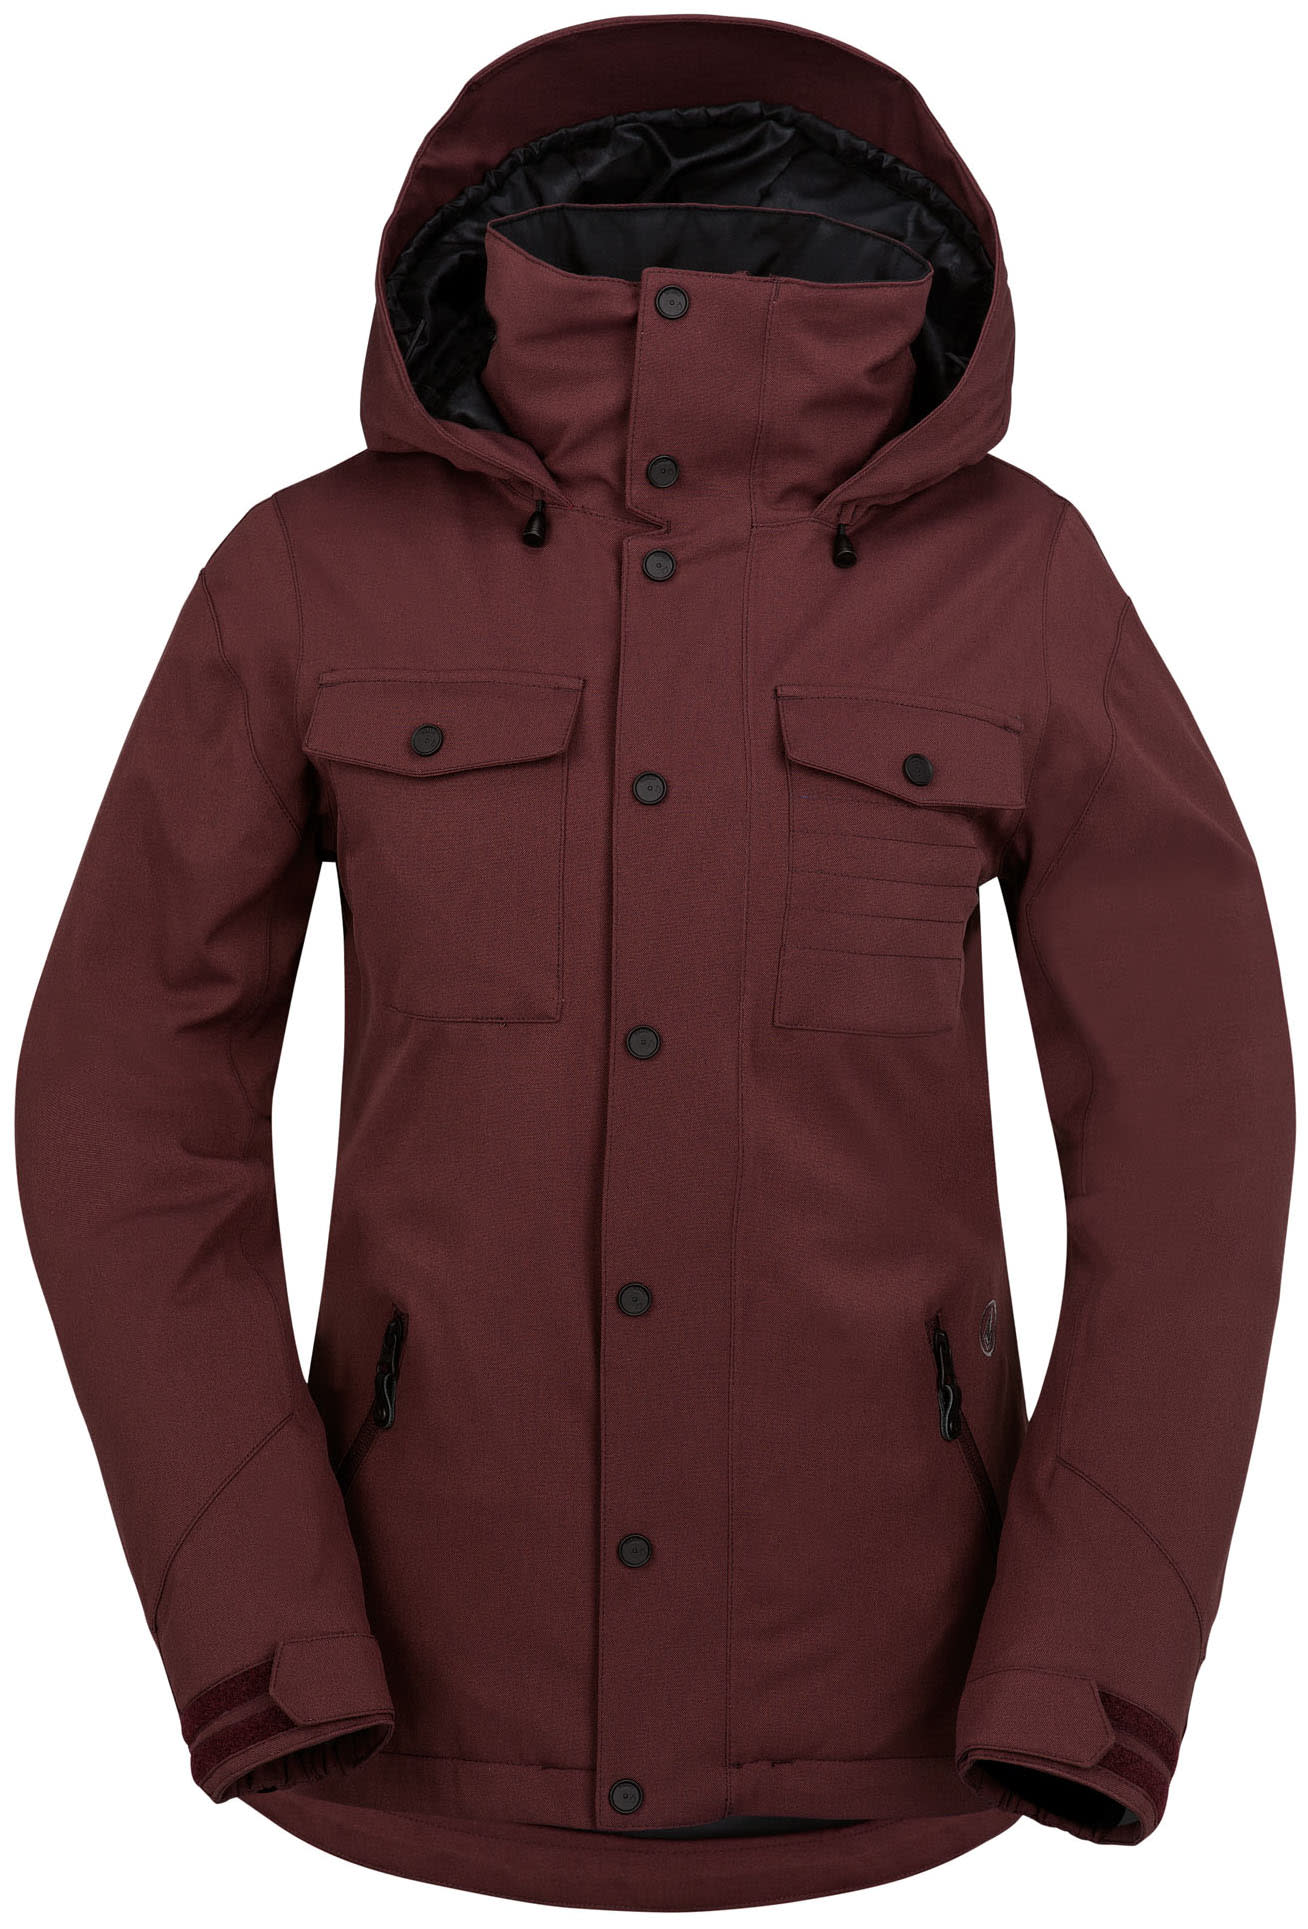 on sale volcom eagle insulated snowboard jacket womens up to 40 off. Black Bedroom Furniture Sets. Home Design Ideas